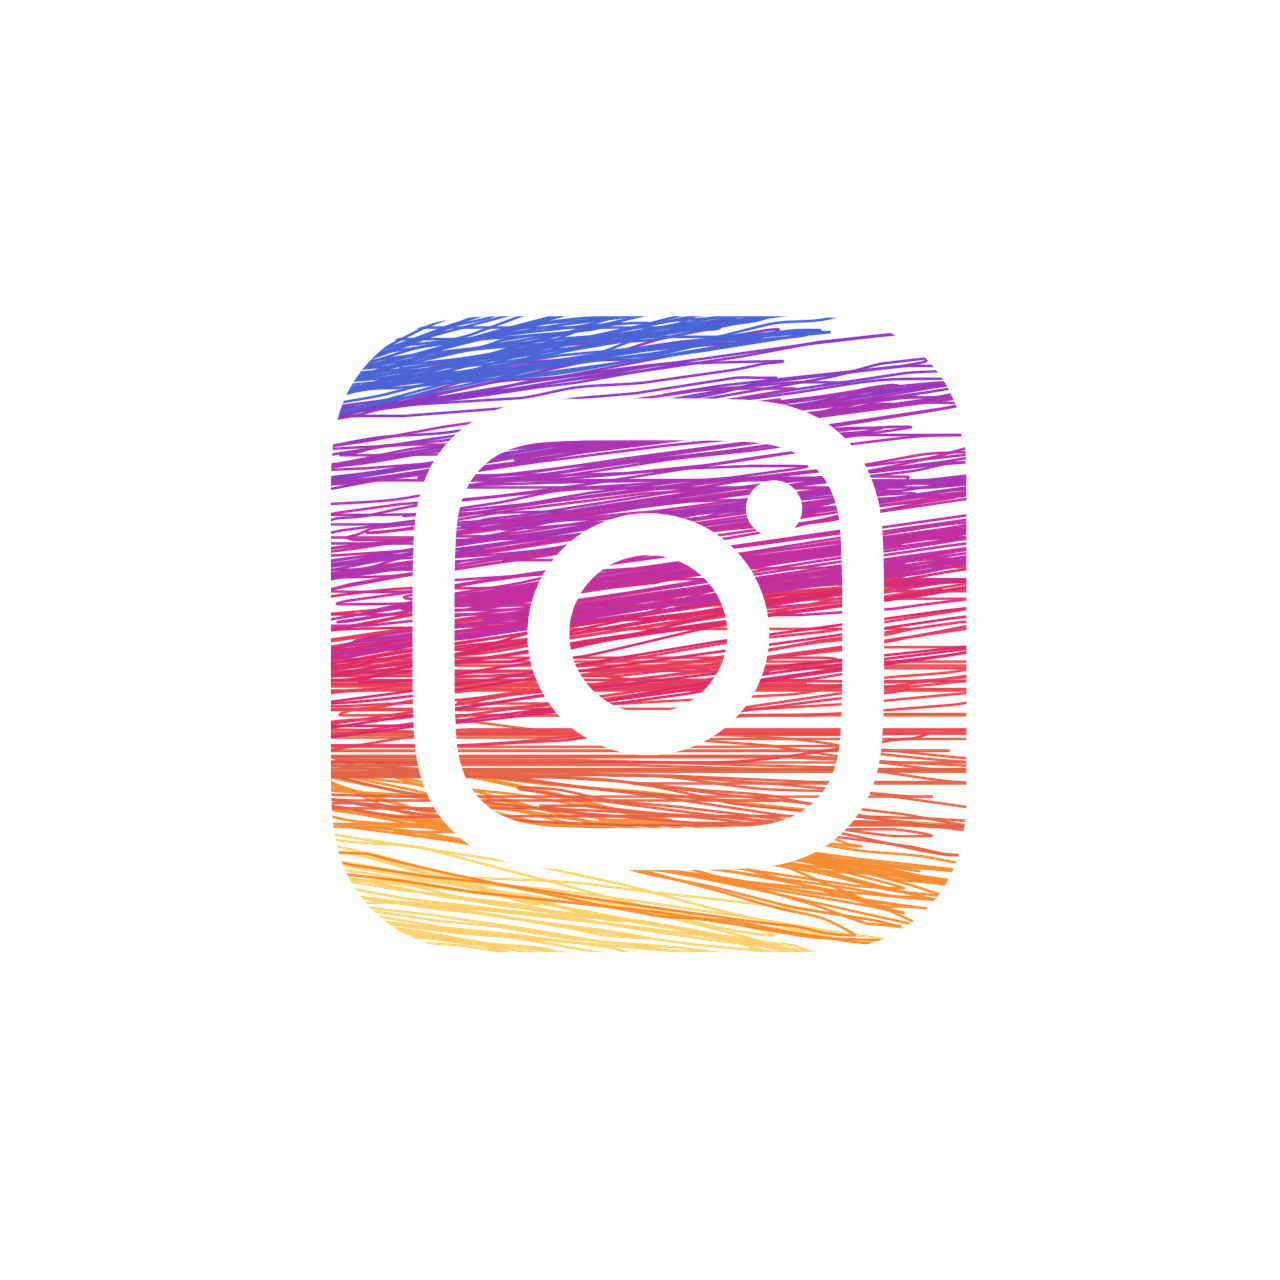 File:Instagram Icon.png.